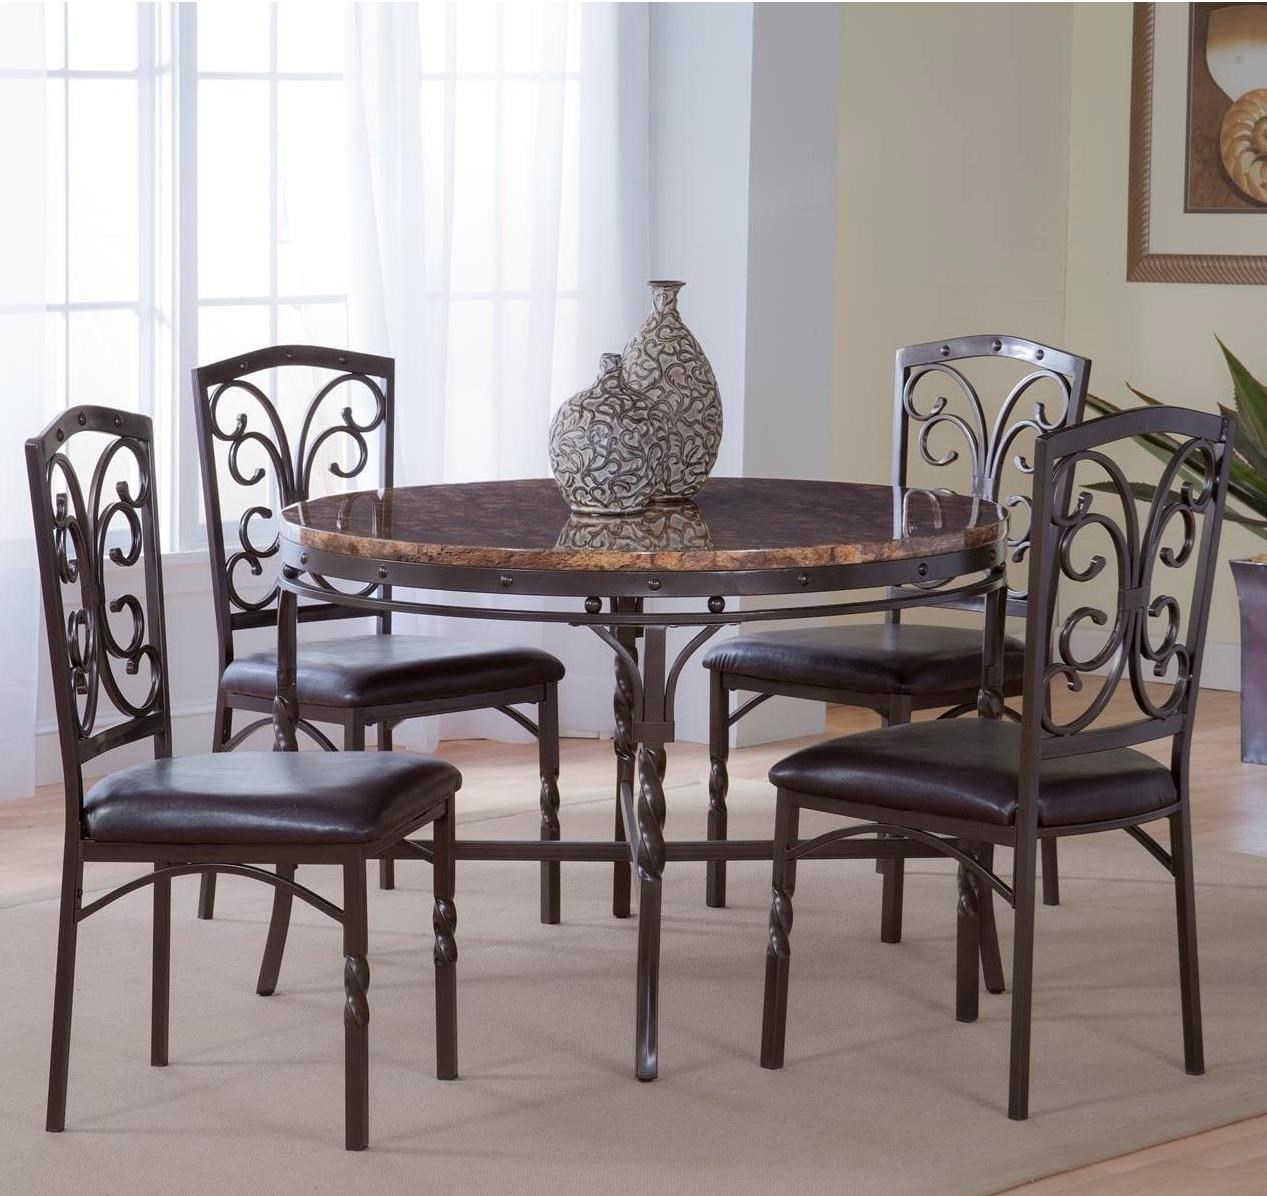 Ashley Furniture Metairie: Bernards Tuscan 5-Piece Metal/Faux Marble Dinette Table